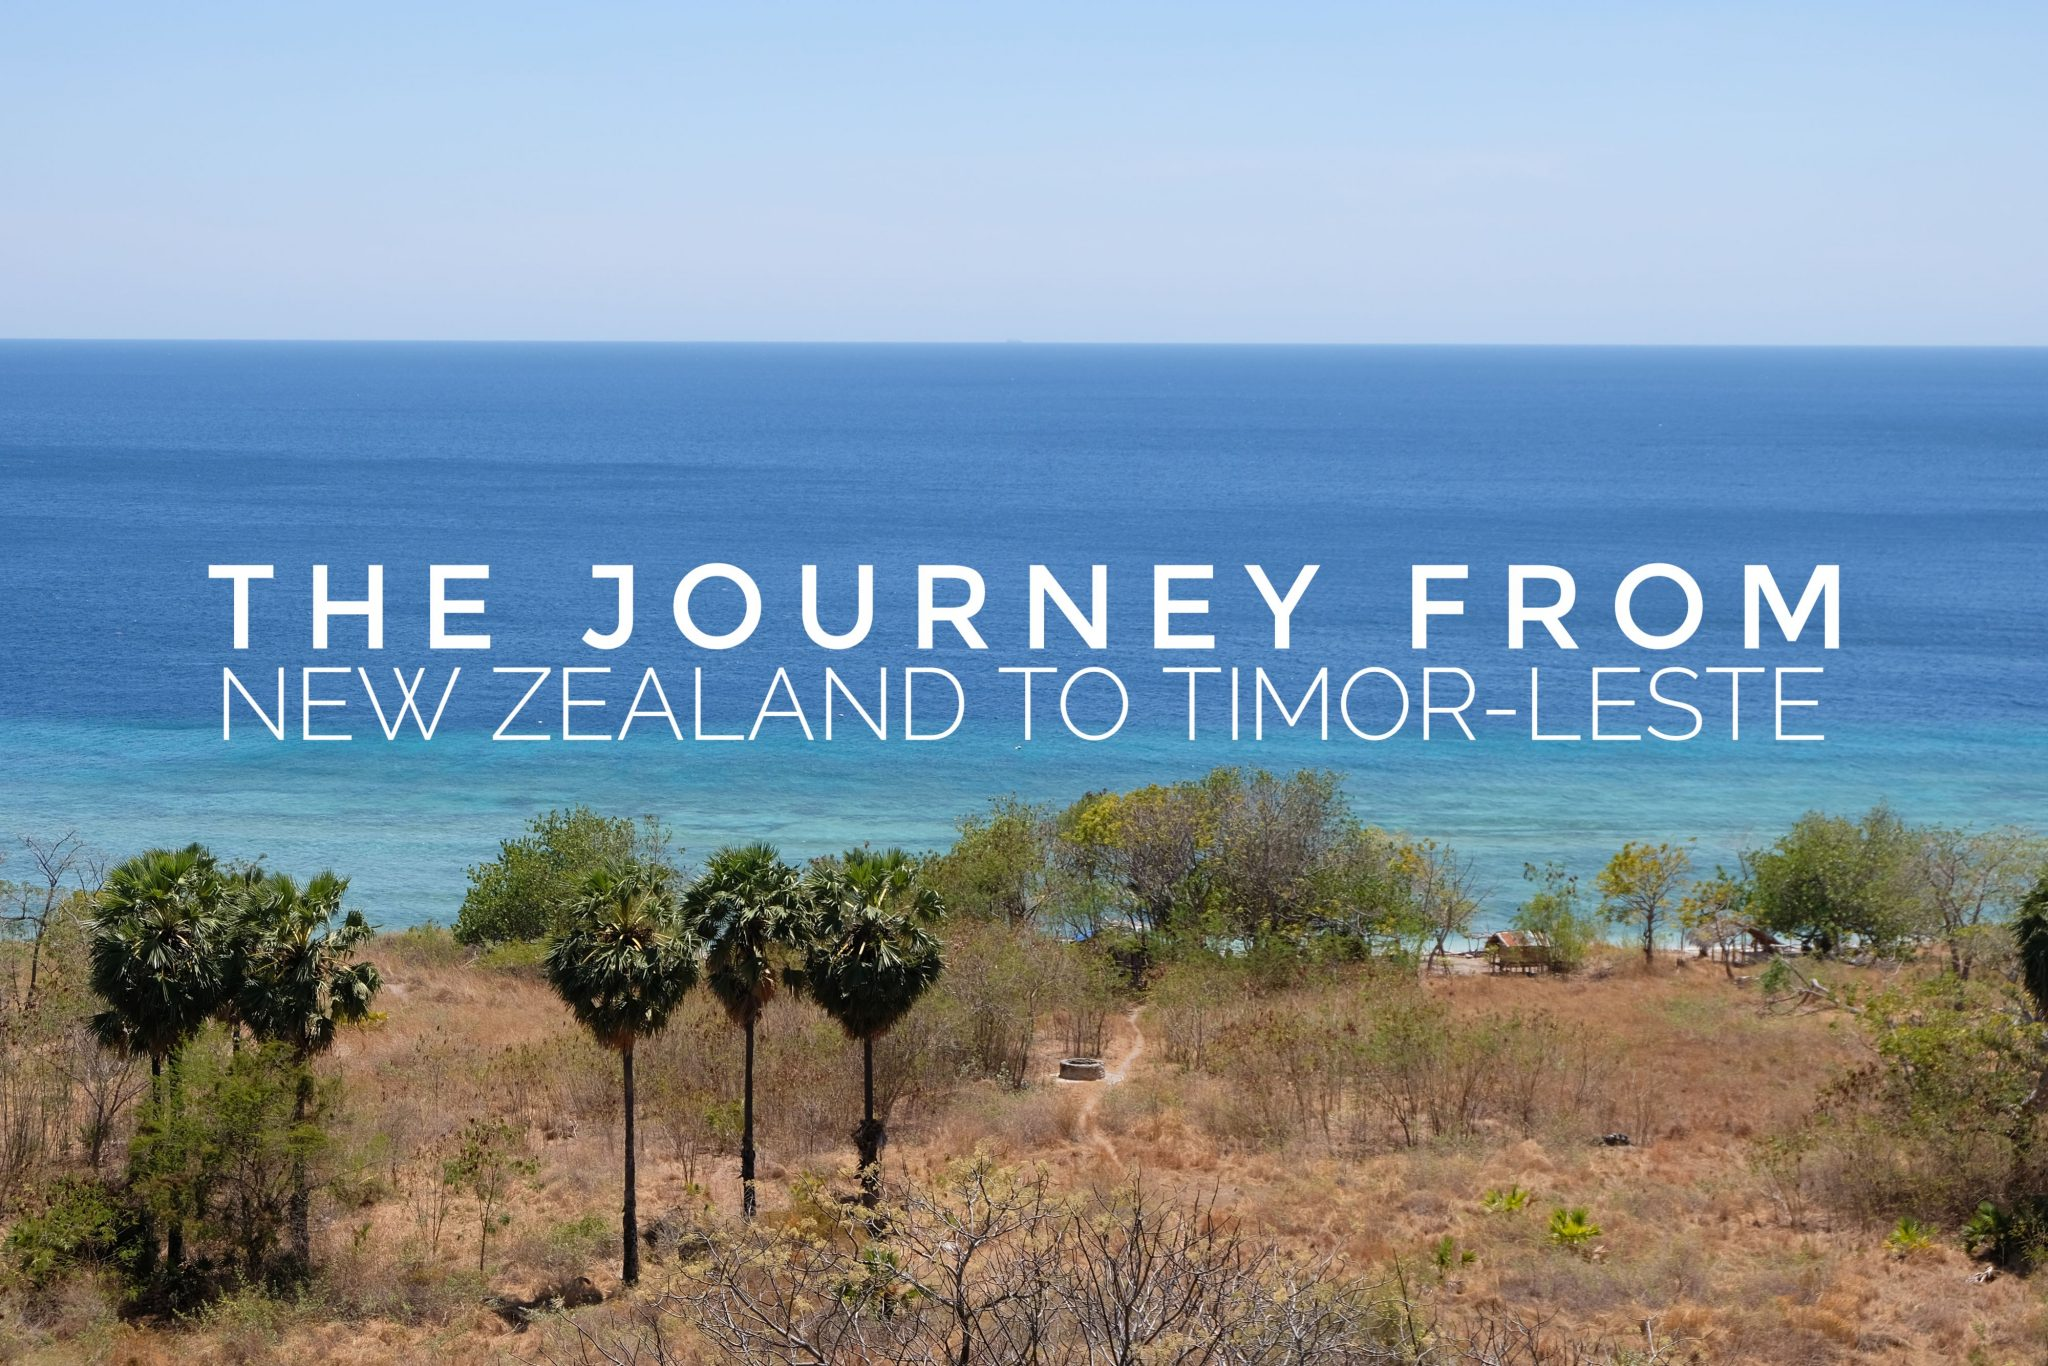 The Journey from New Zealand to Timor Leste